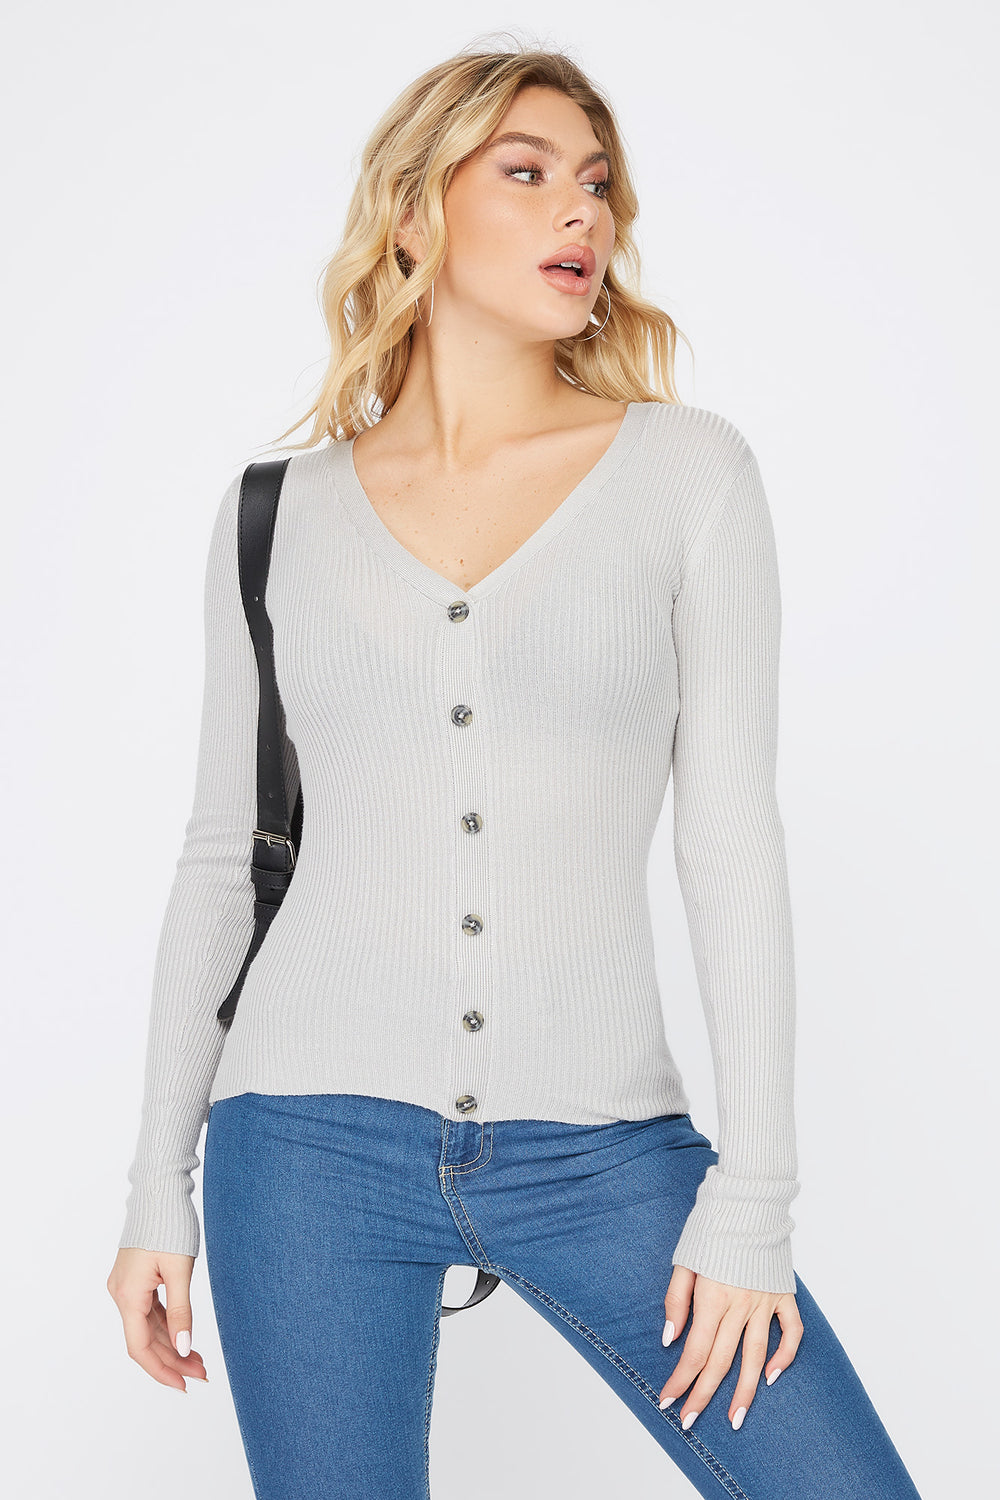 Ribbed V-Neck Button Long Sleeve Heather Grey